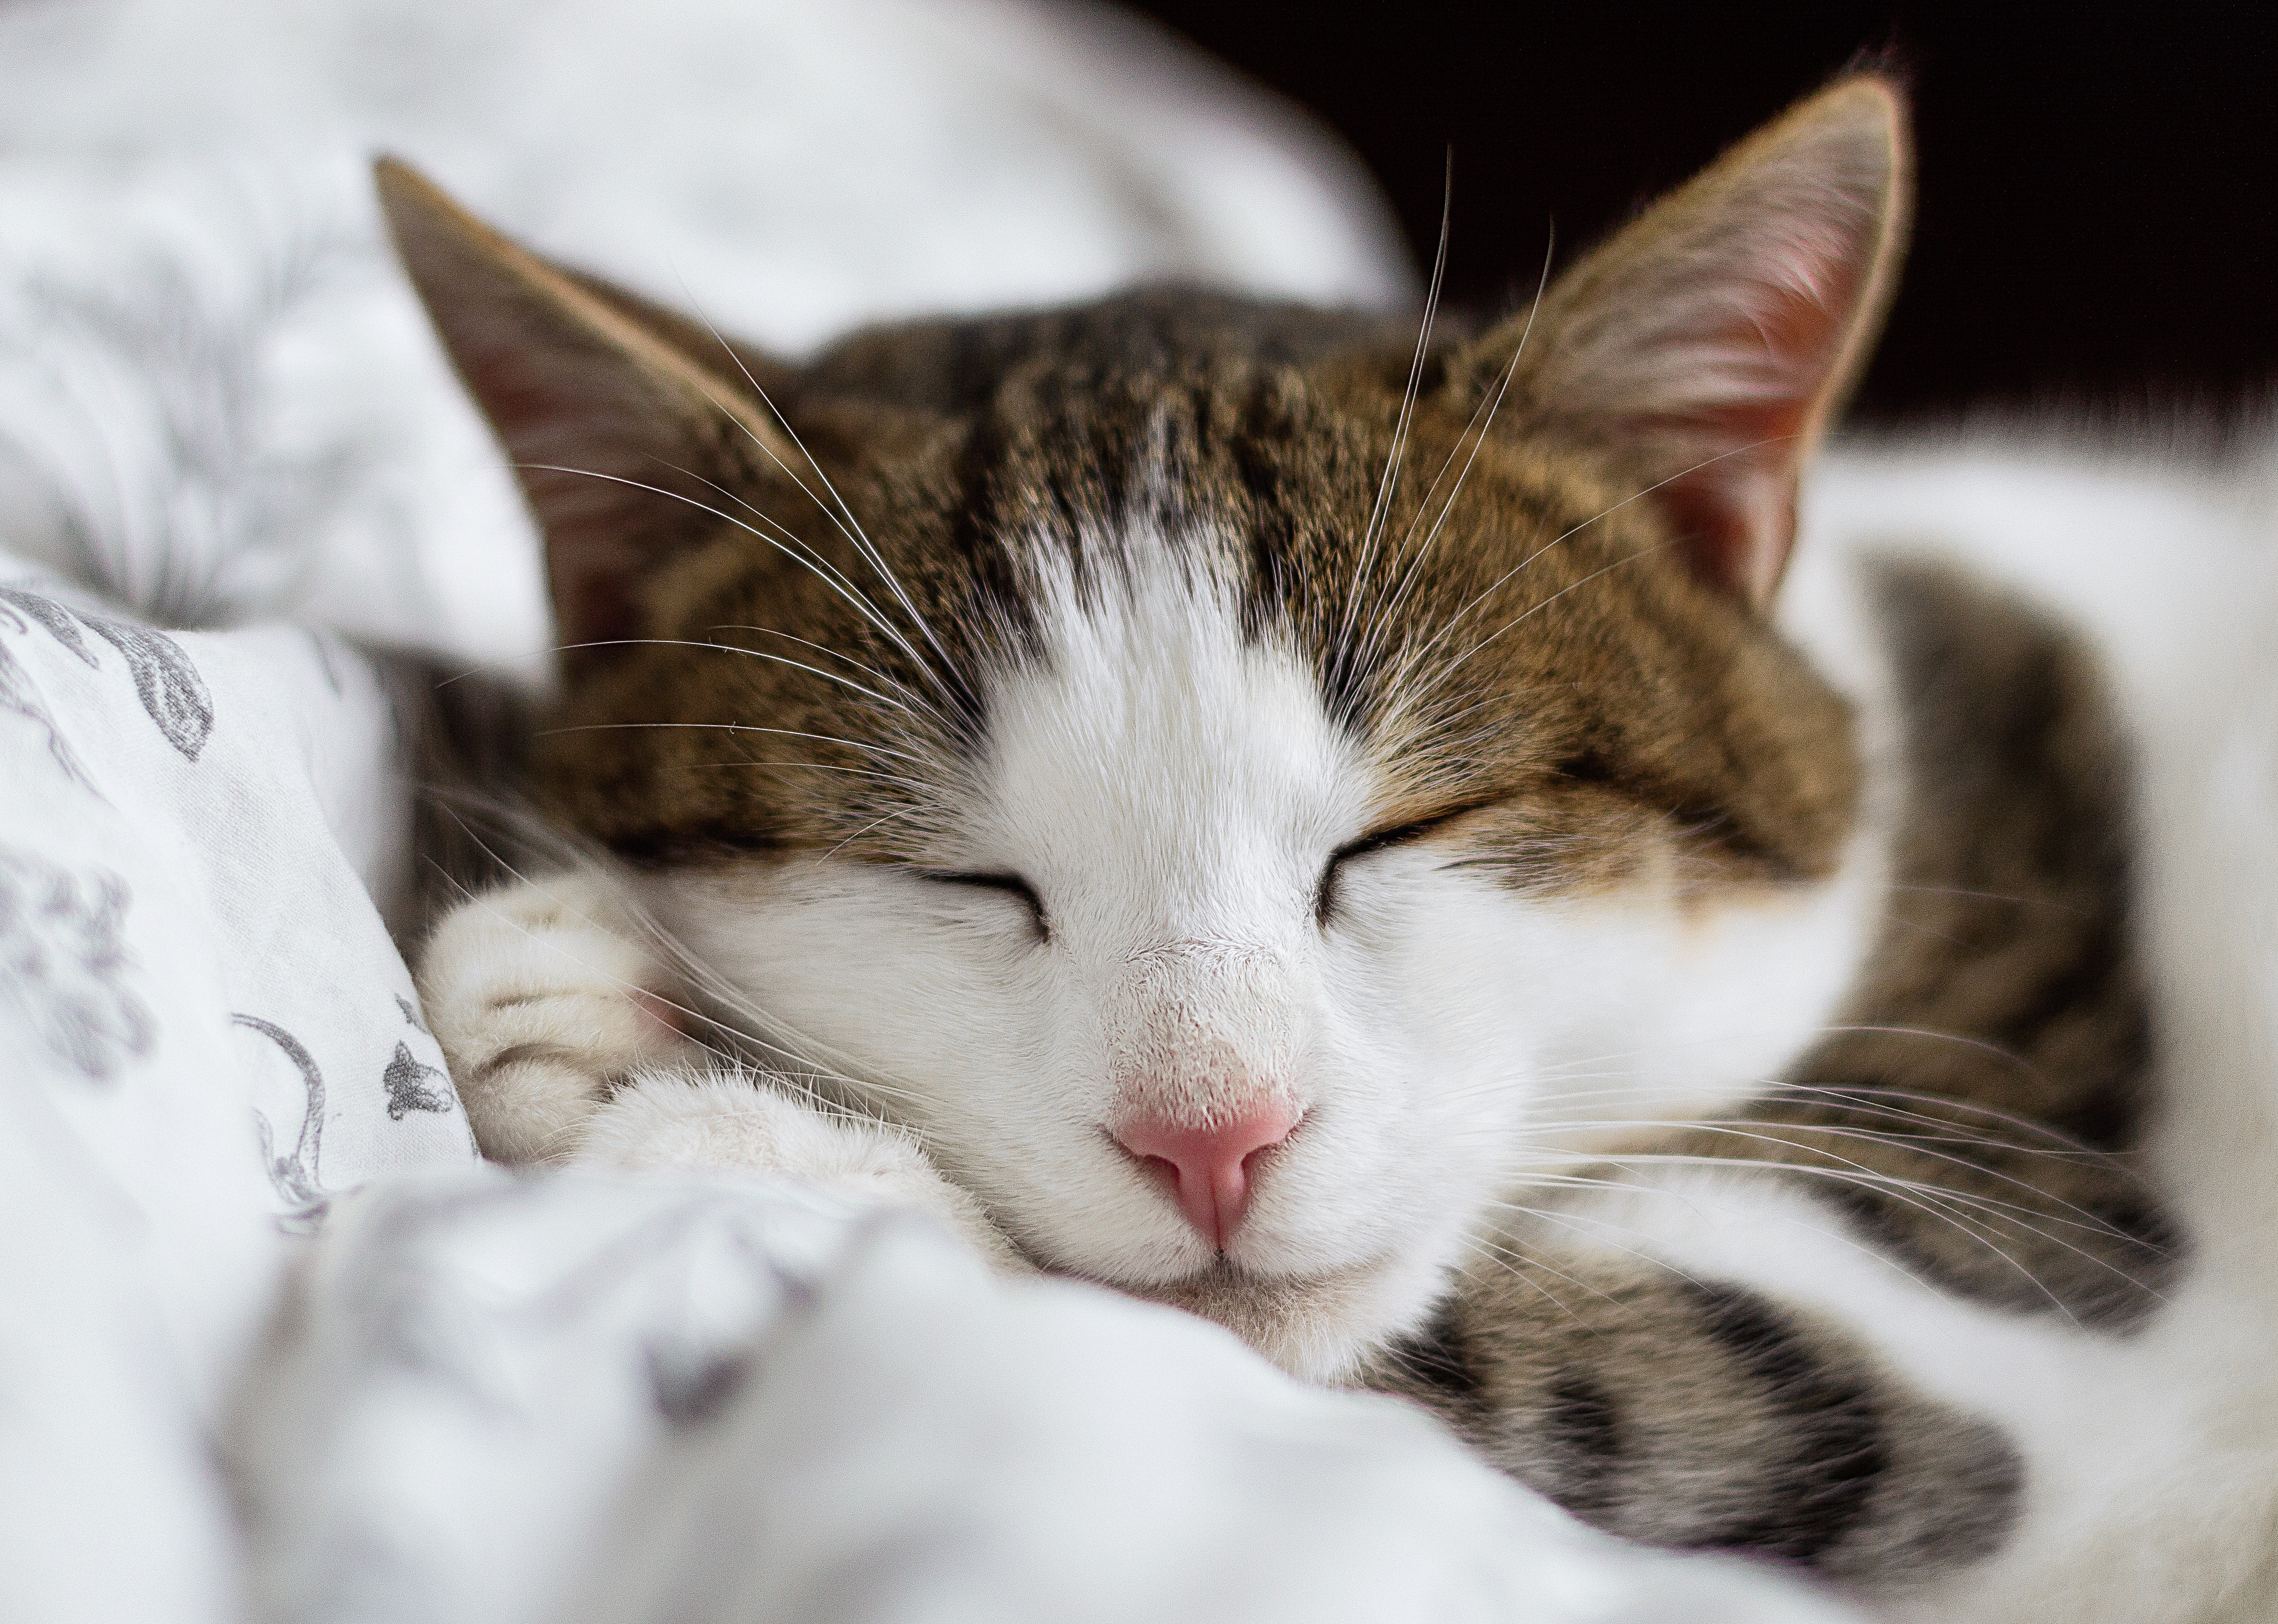 Close-up of a sleeping white and brown tabby cat